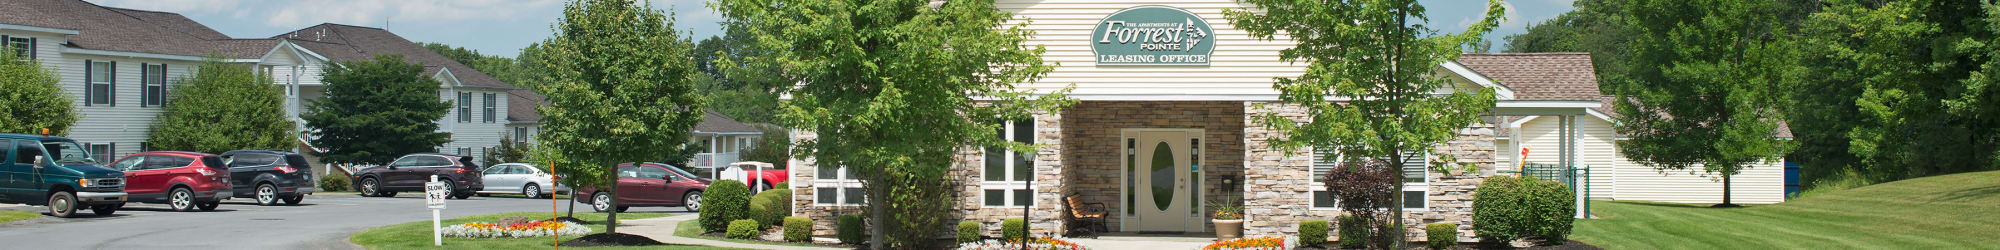 Floor Plans at Forrest Pointe Apartments and Townhomes in East Greenbush